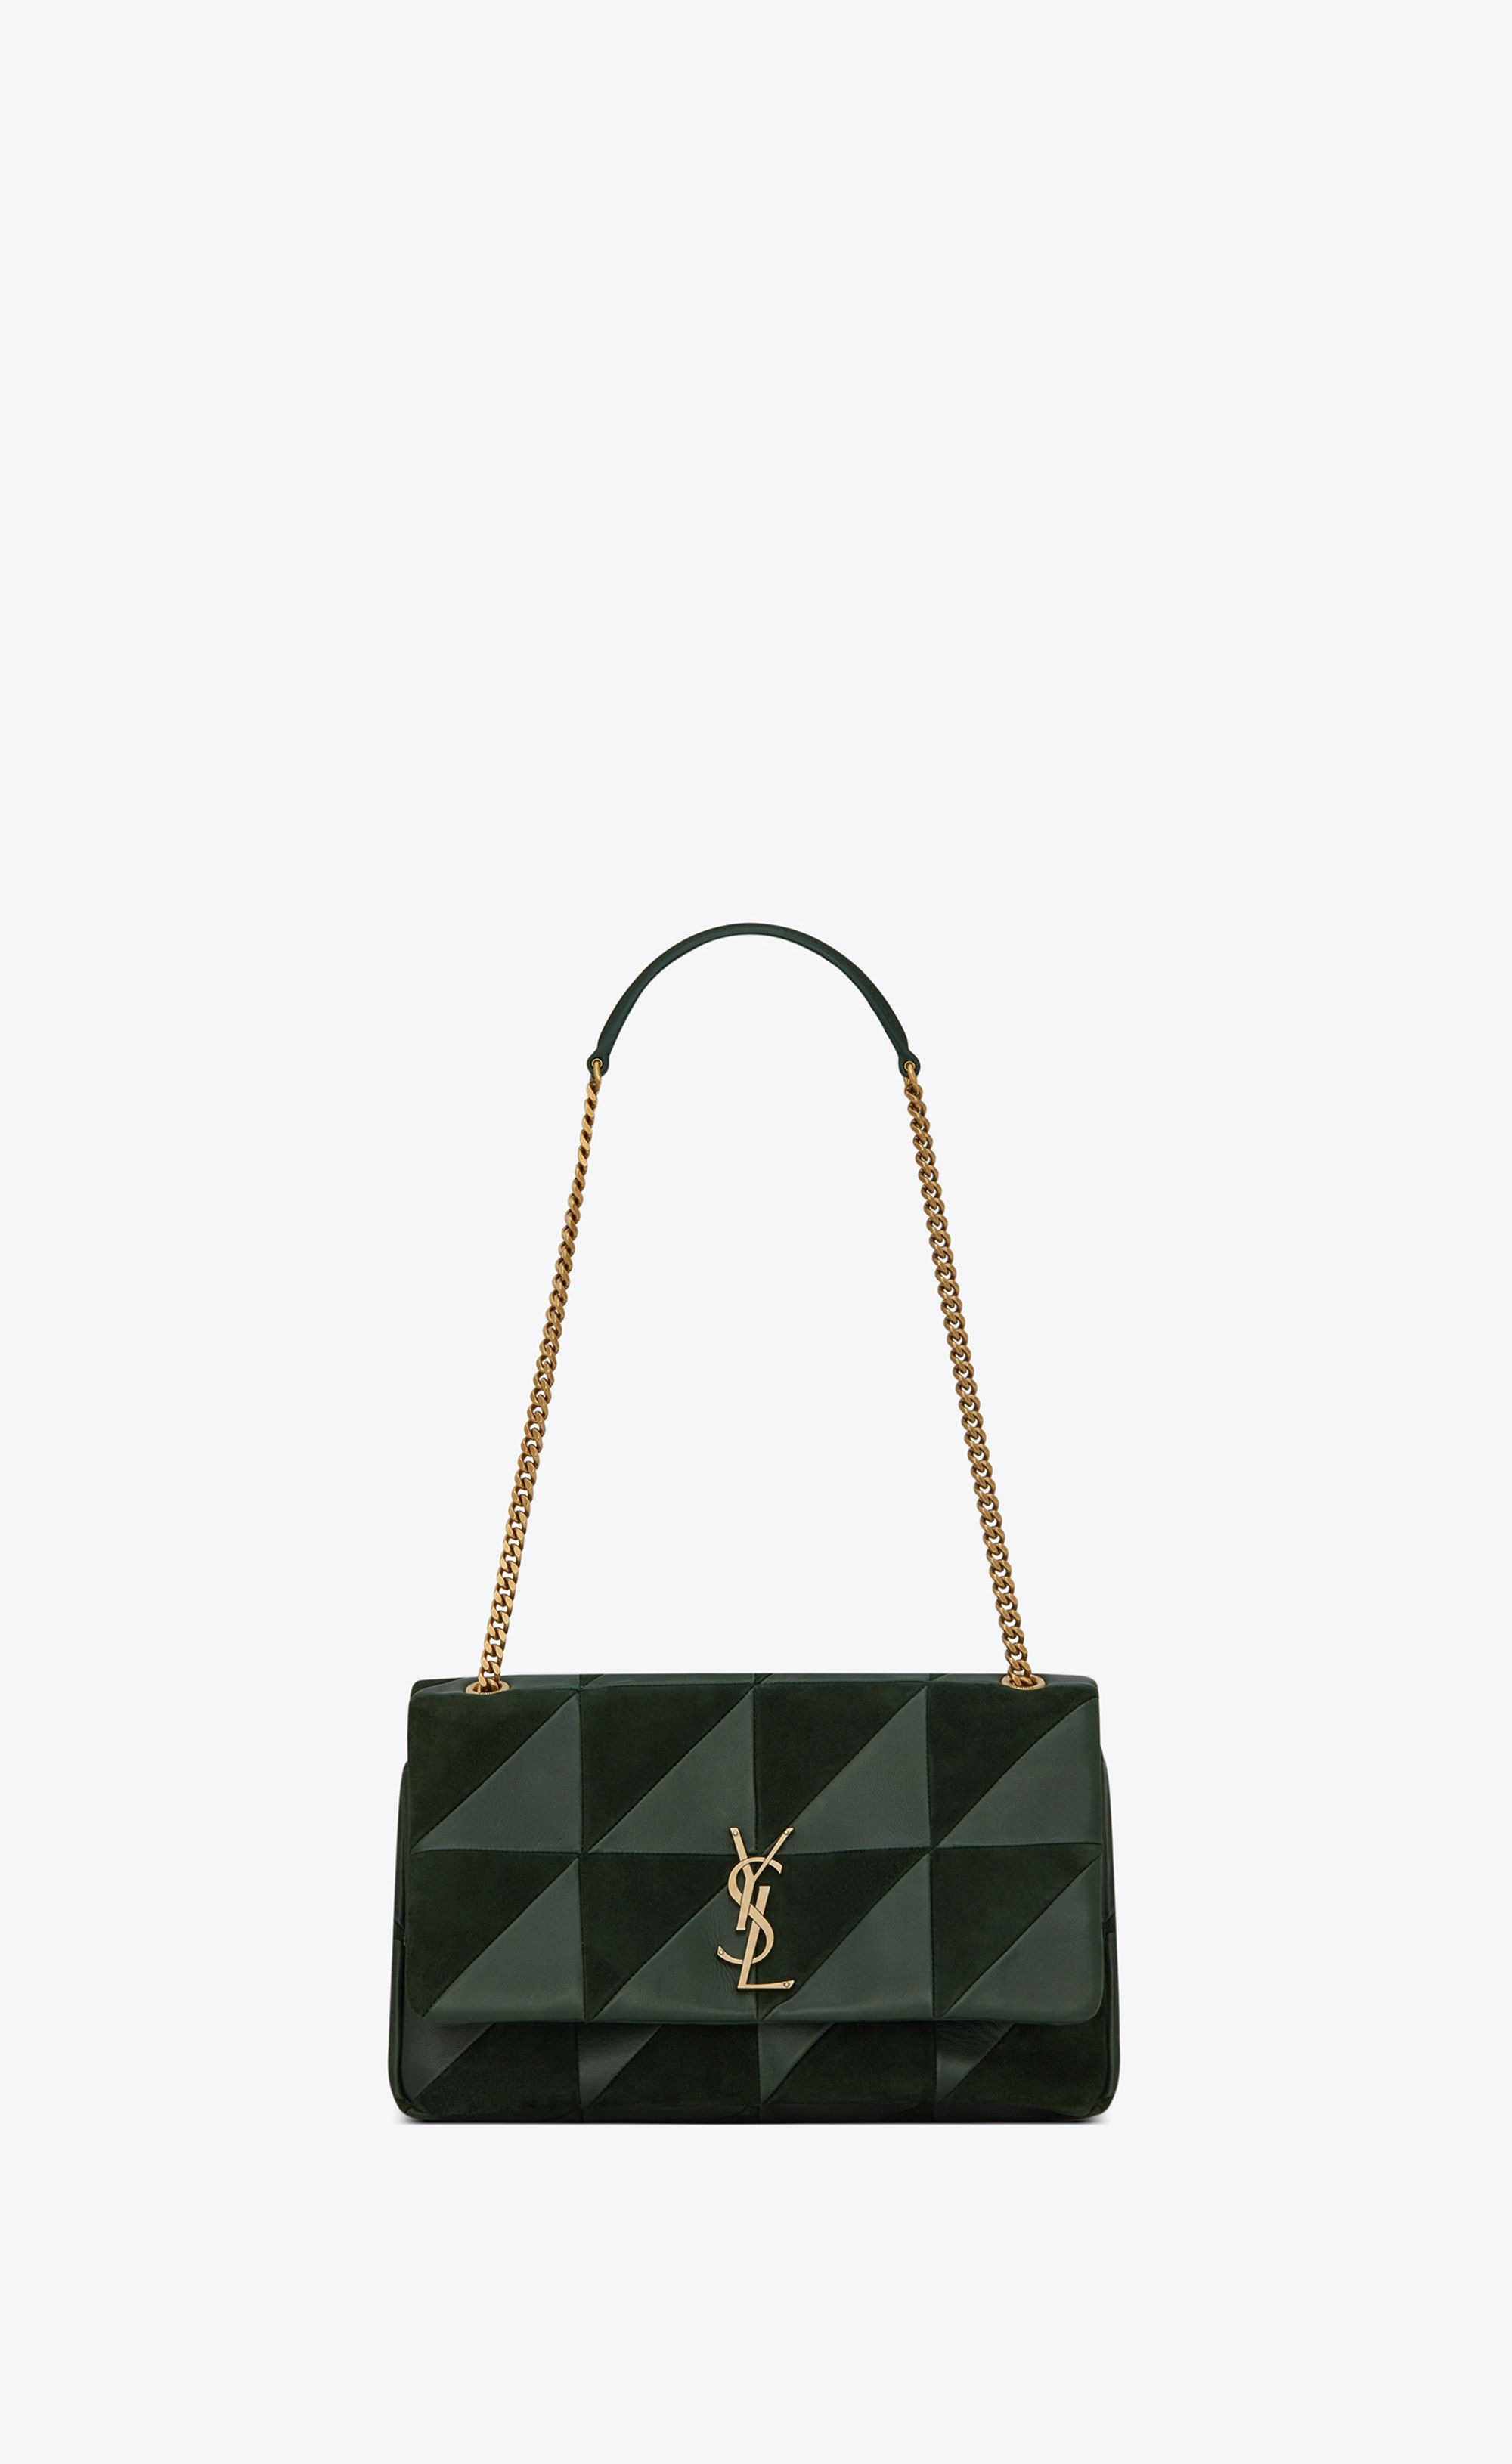 Saint Laurent Medium Jamie Bag In Dark Green Leather And Suede Patchwork  91ed21eef309f